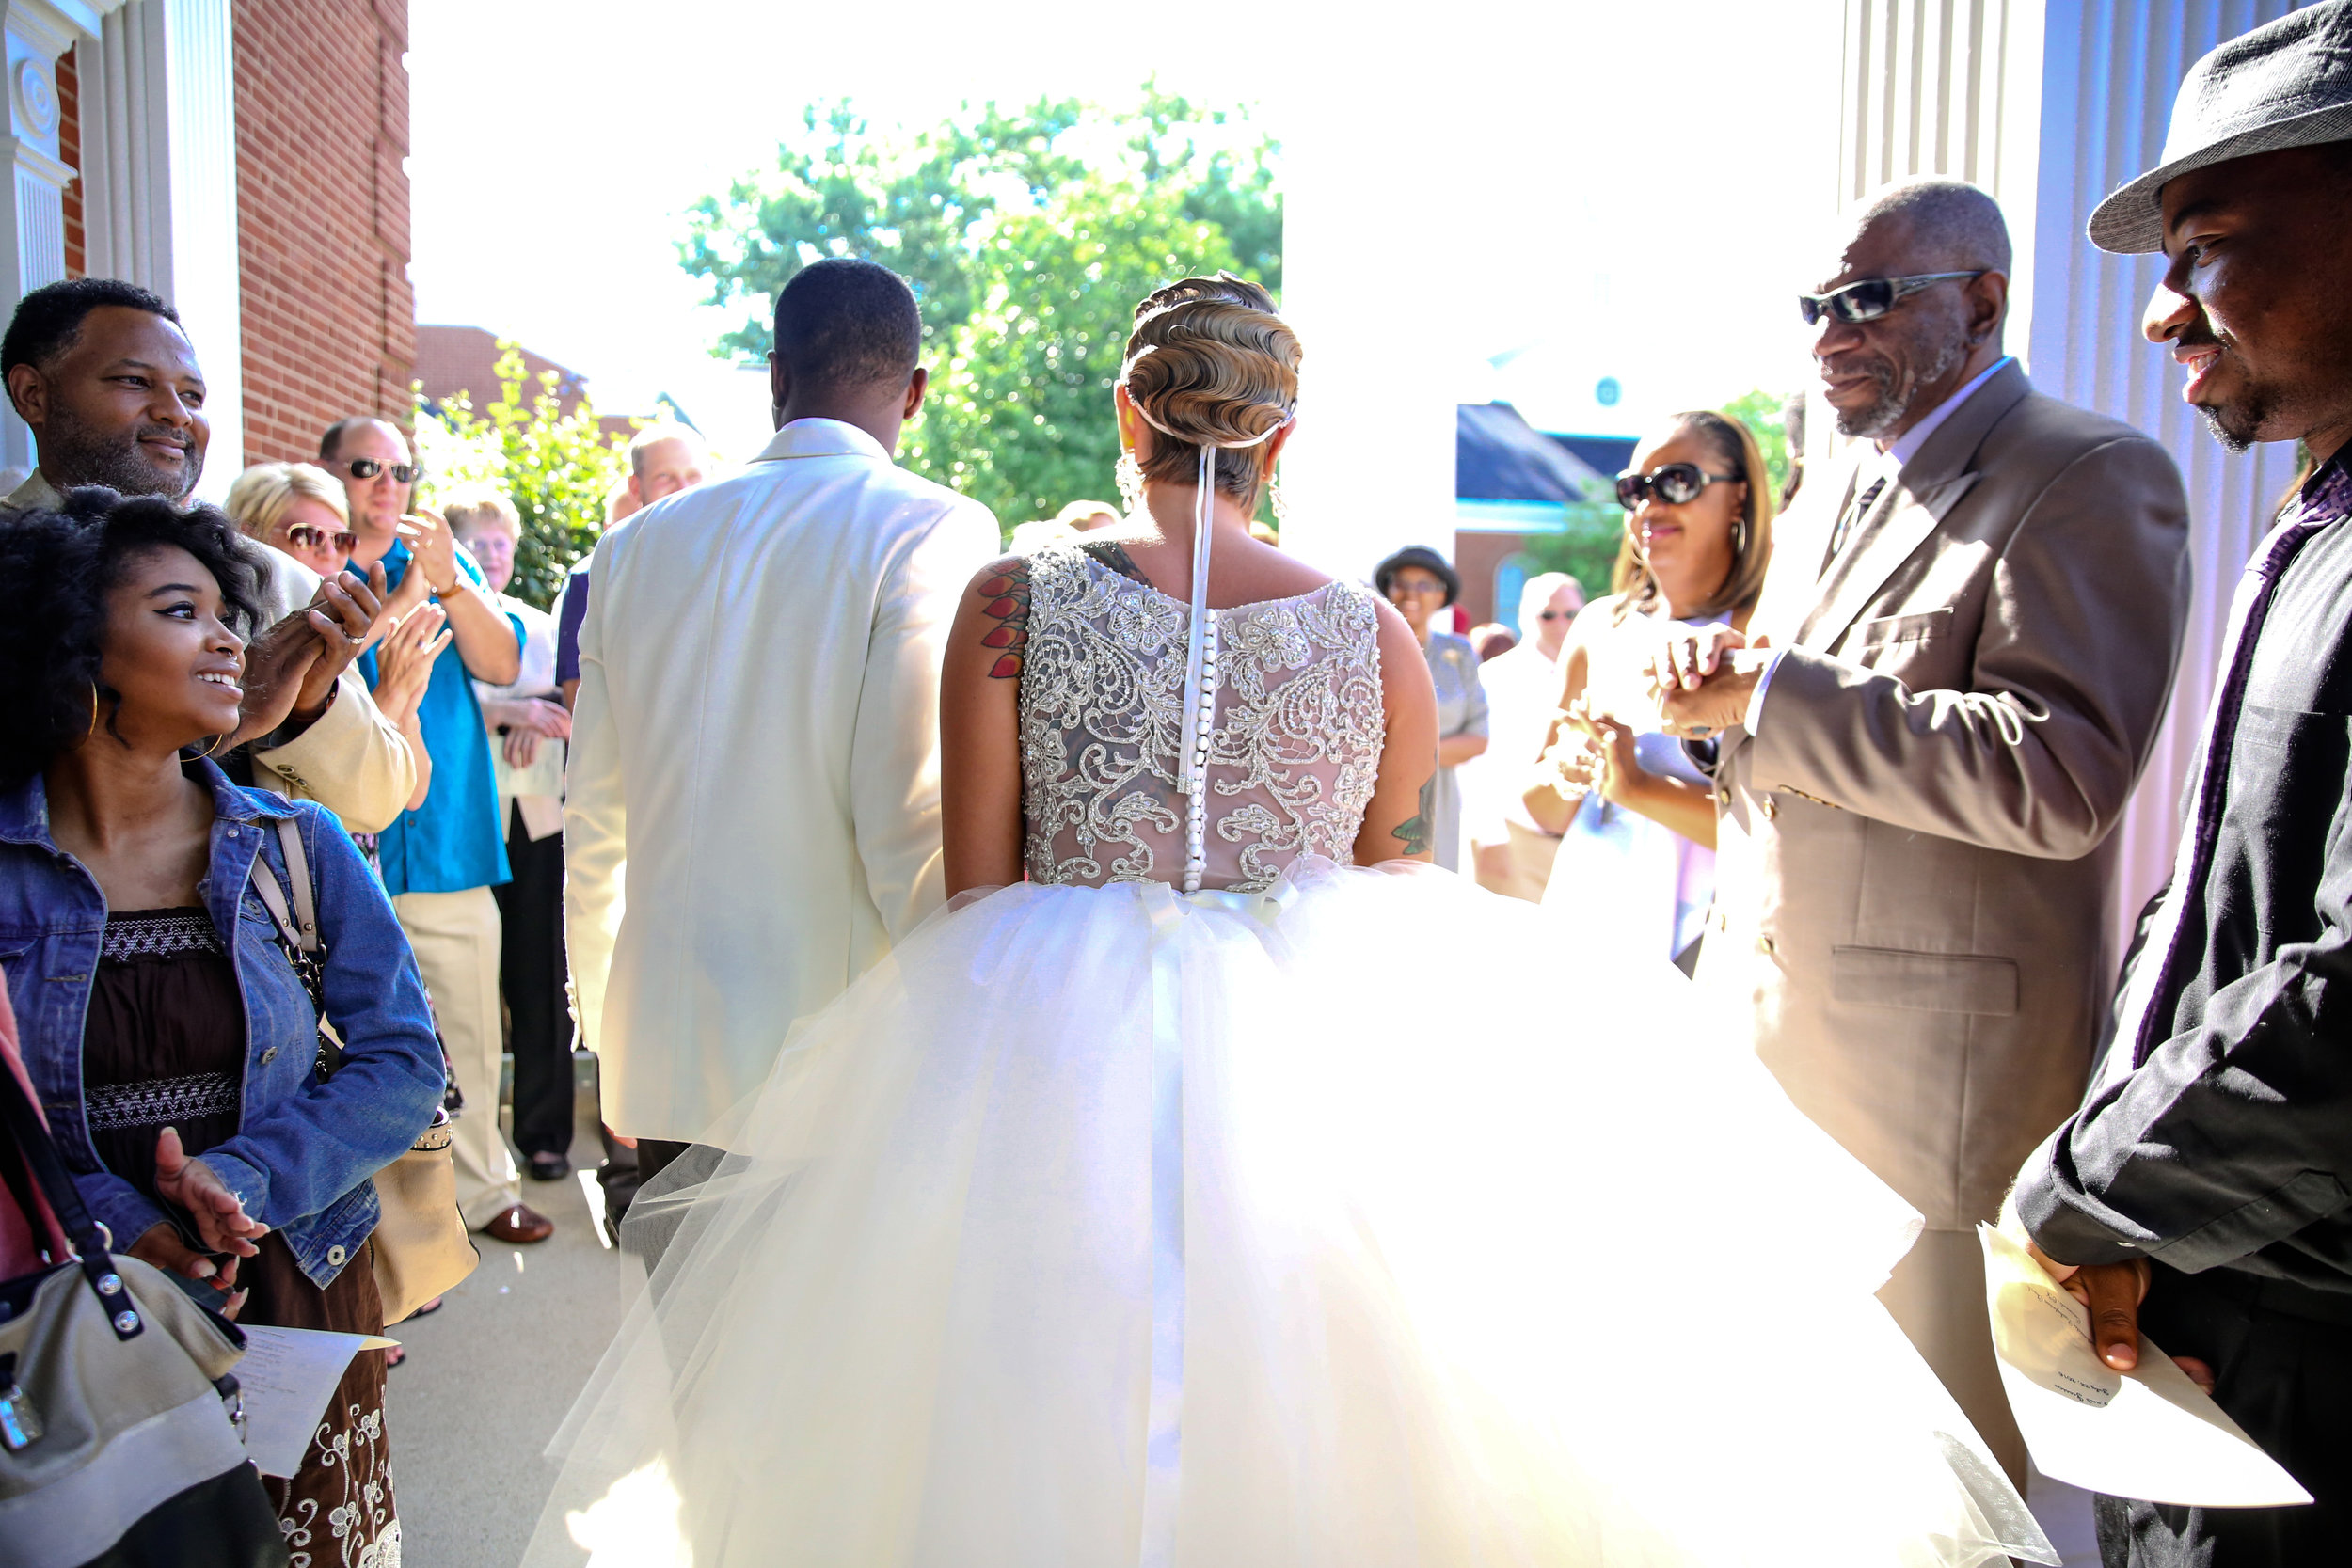 Turning-Point-Events_Cincinnati-Wedding_Masterworks-Photography.jpg